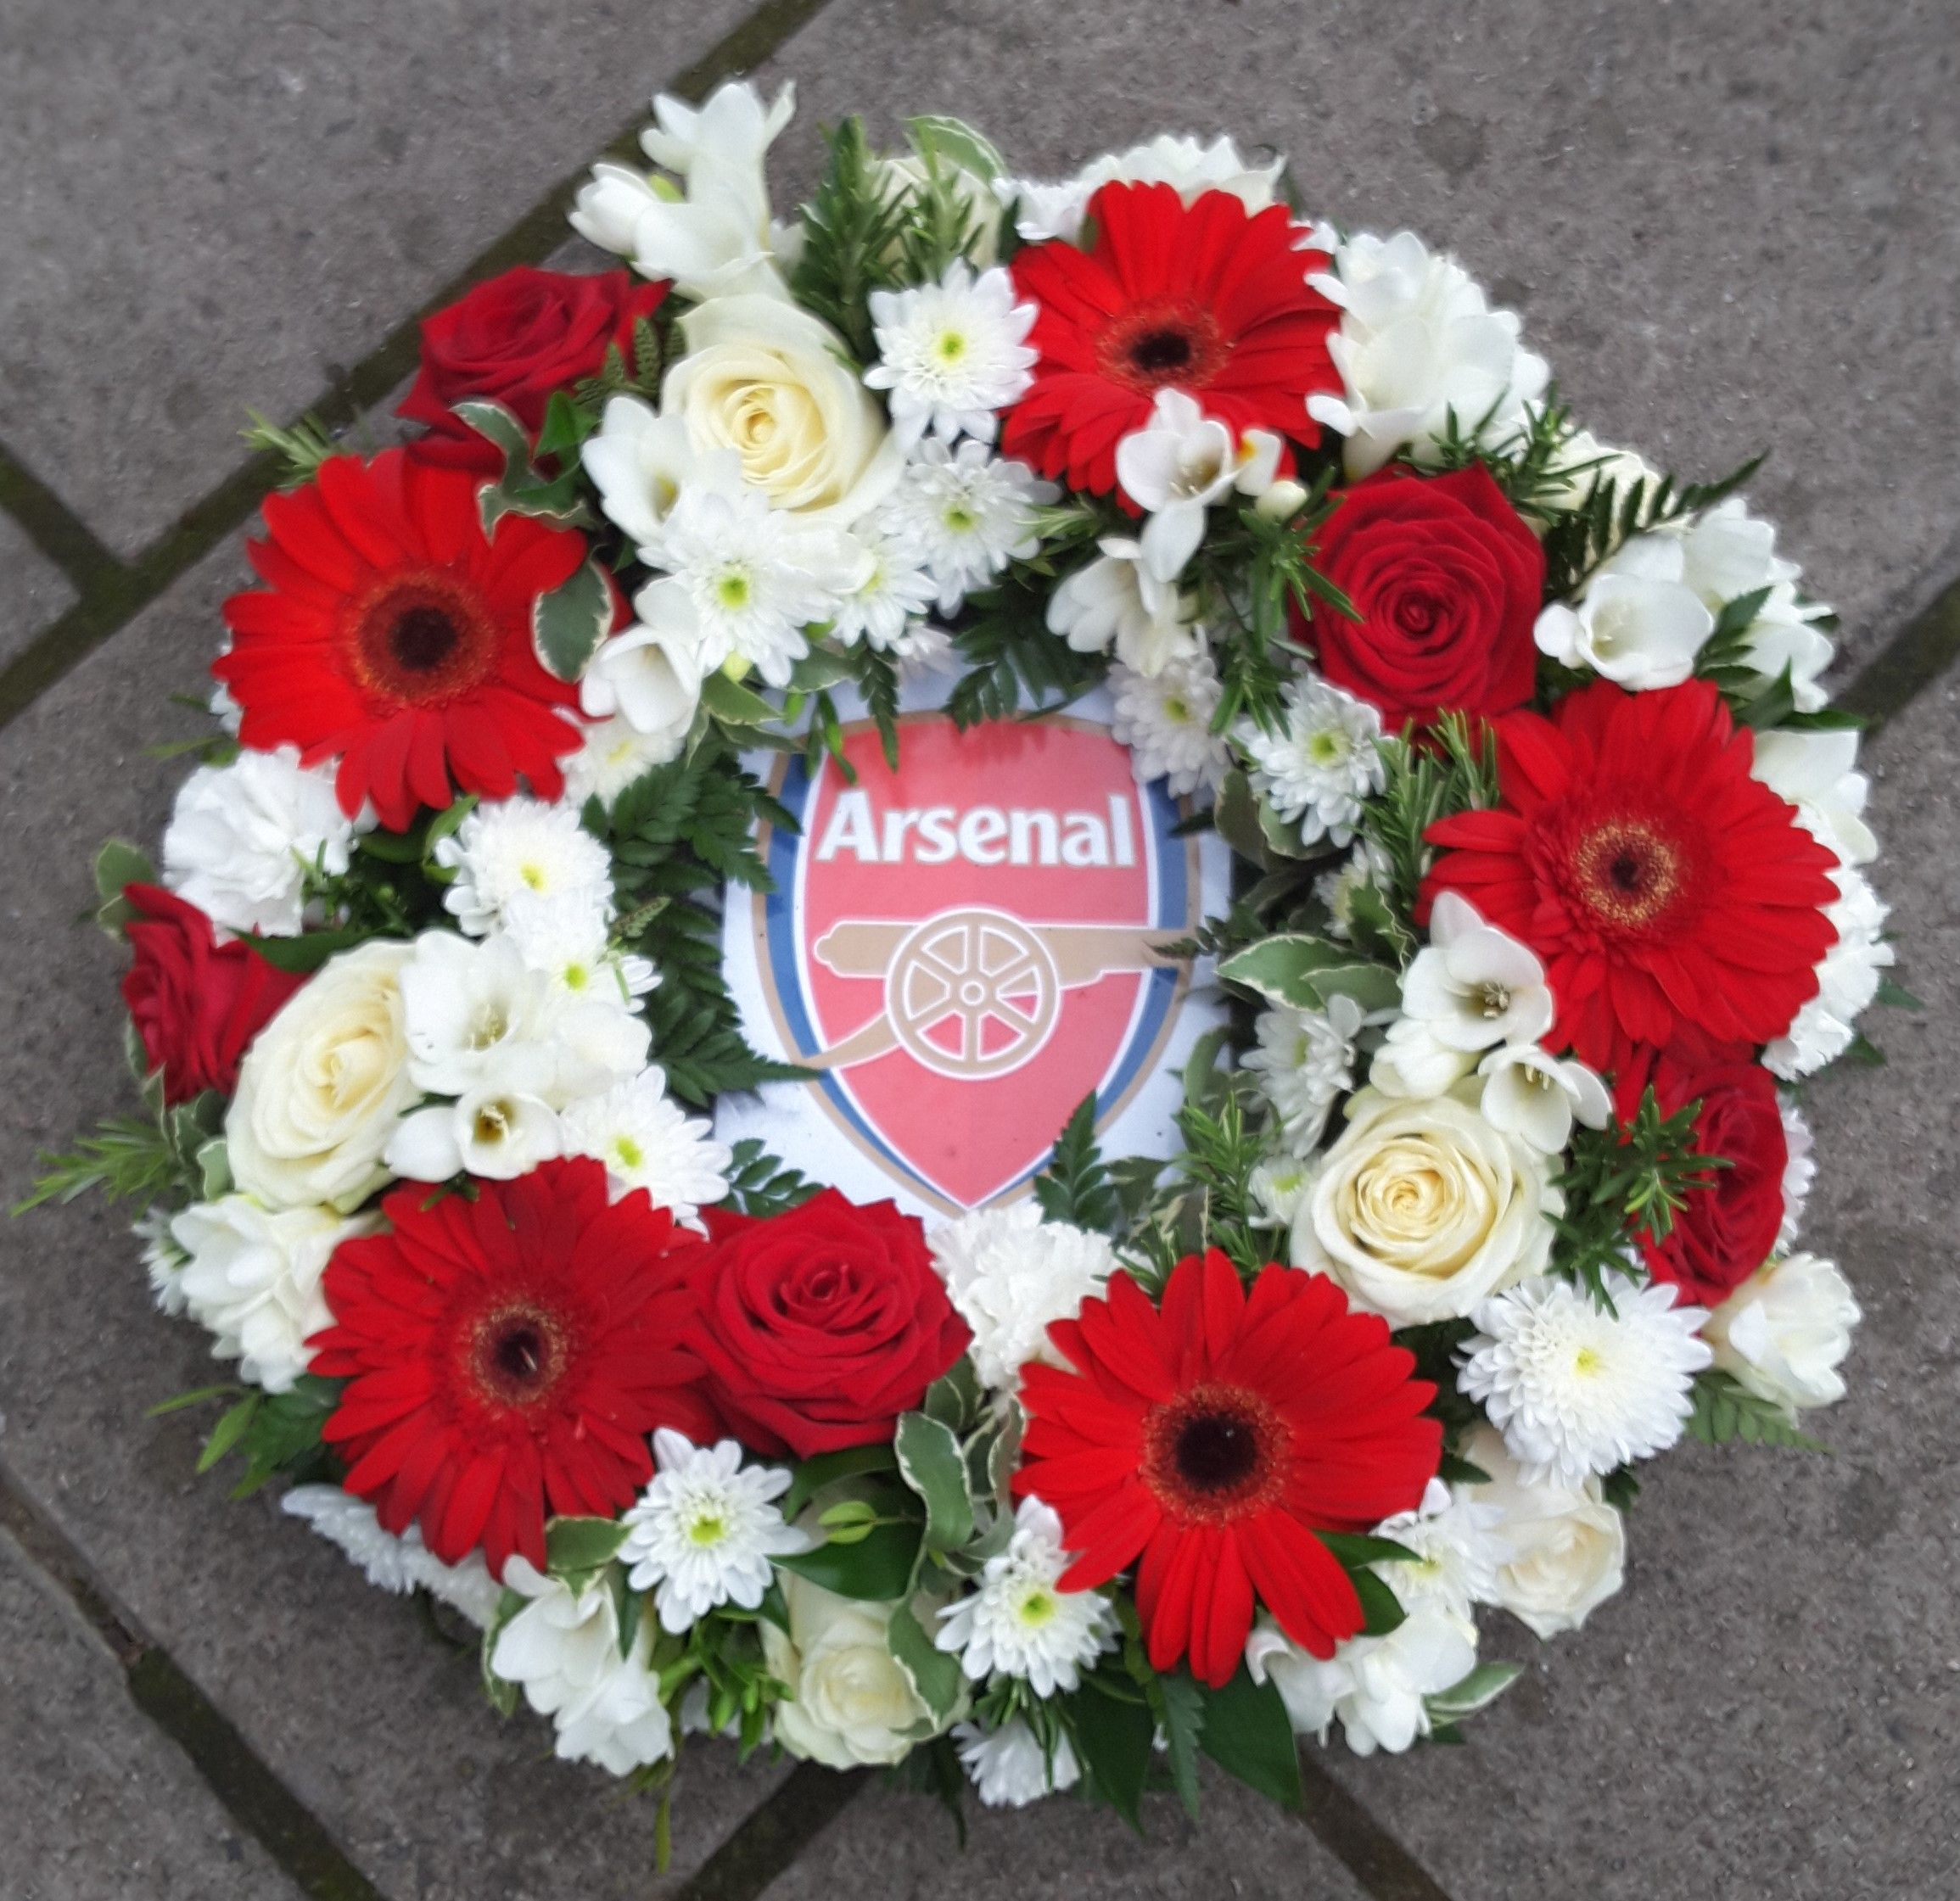 Another Arsenal Bespoke Funeral Wreath Seasons Funeral Tributes